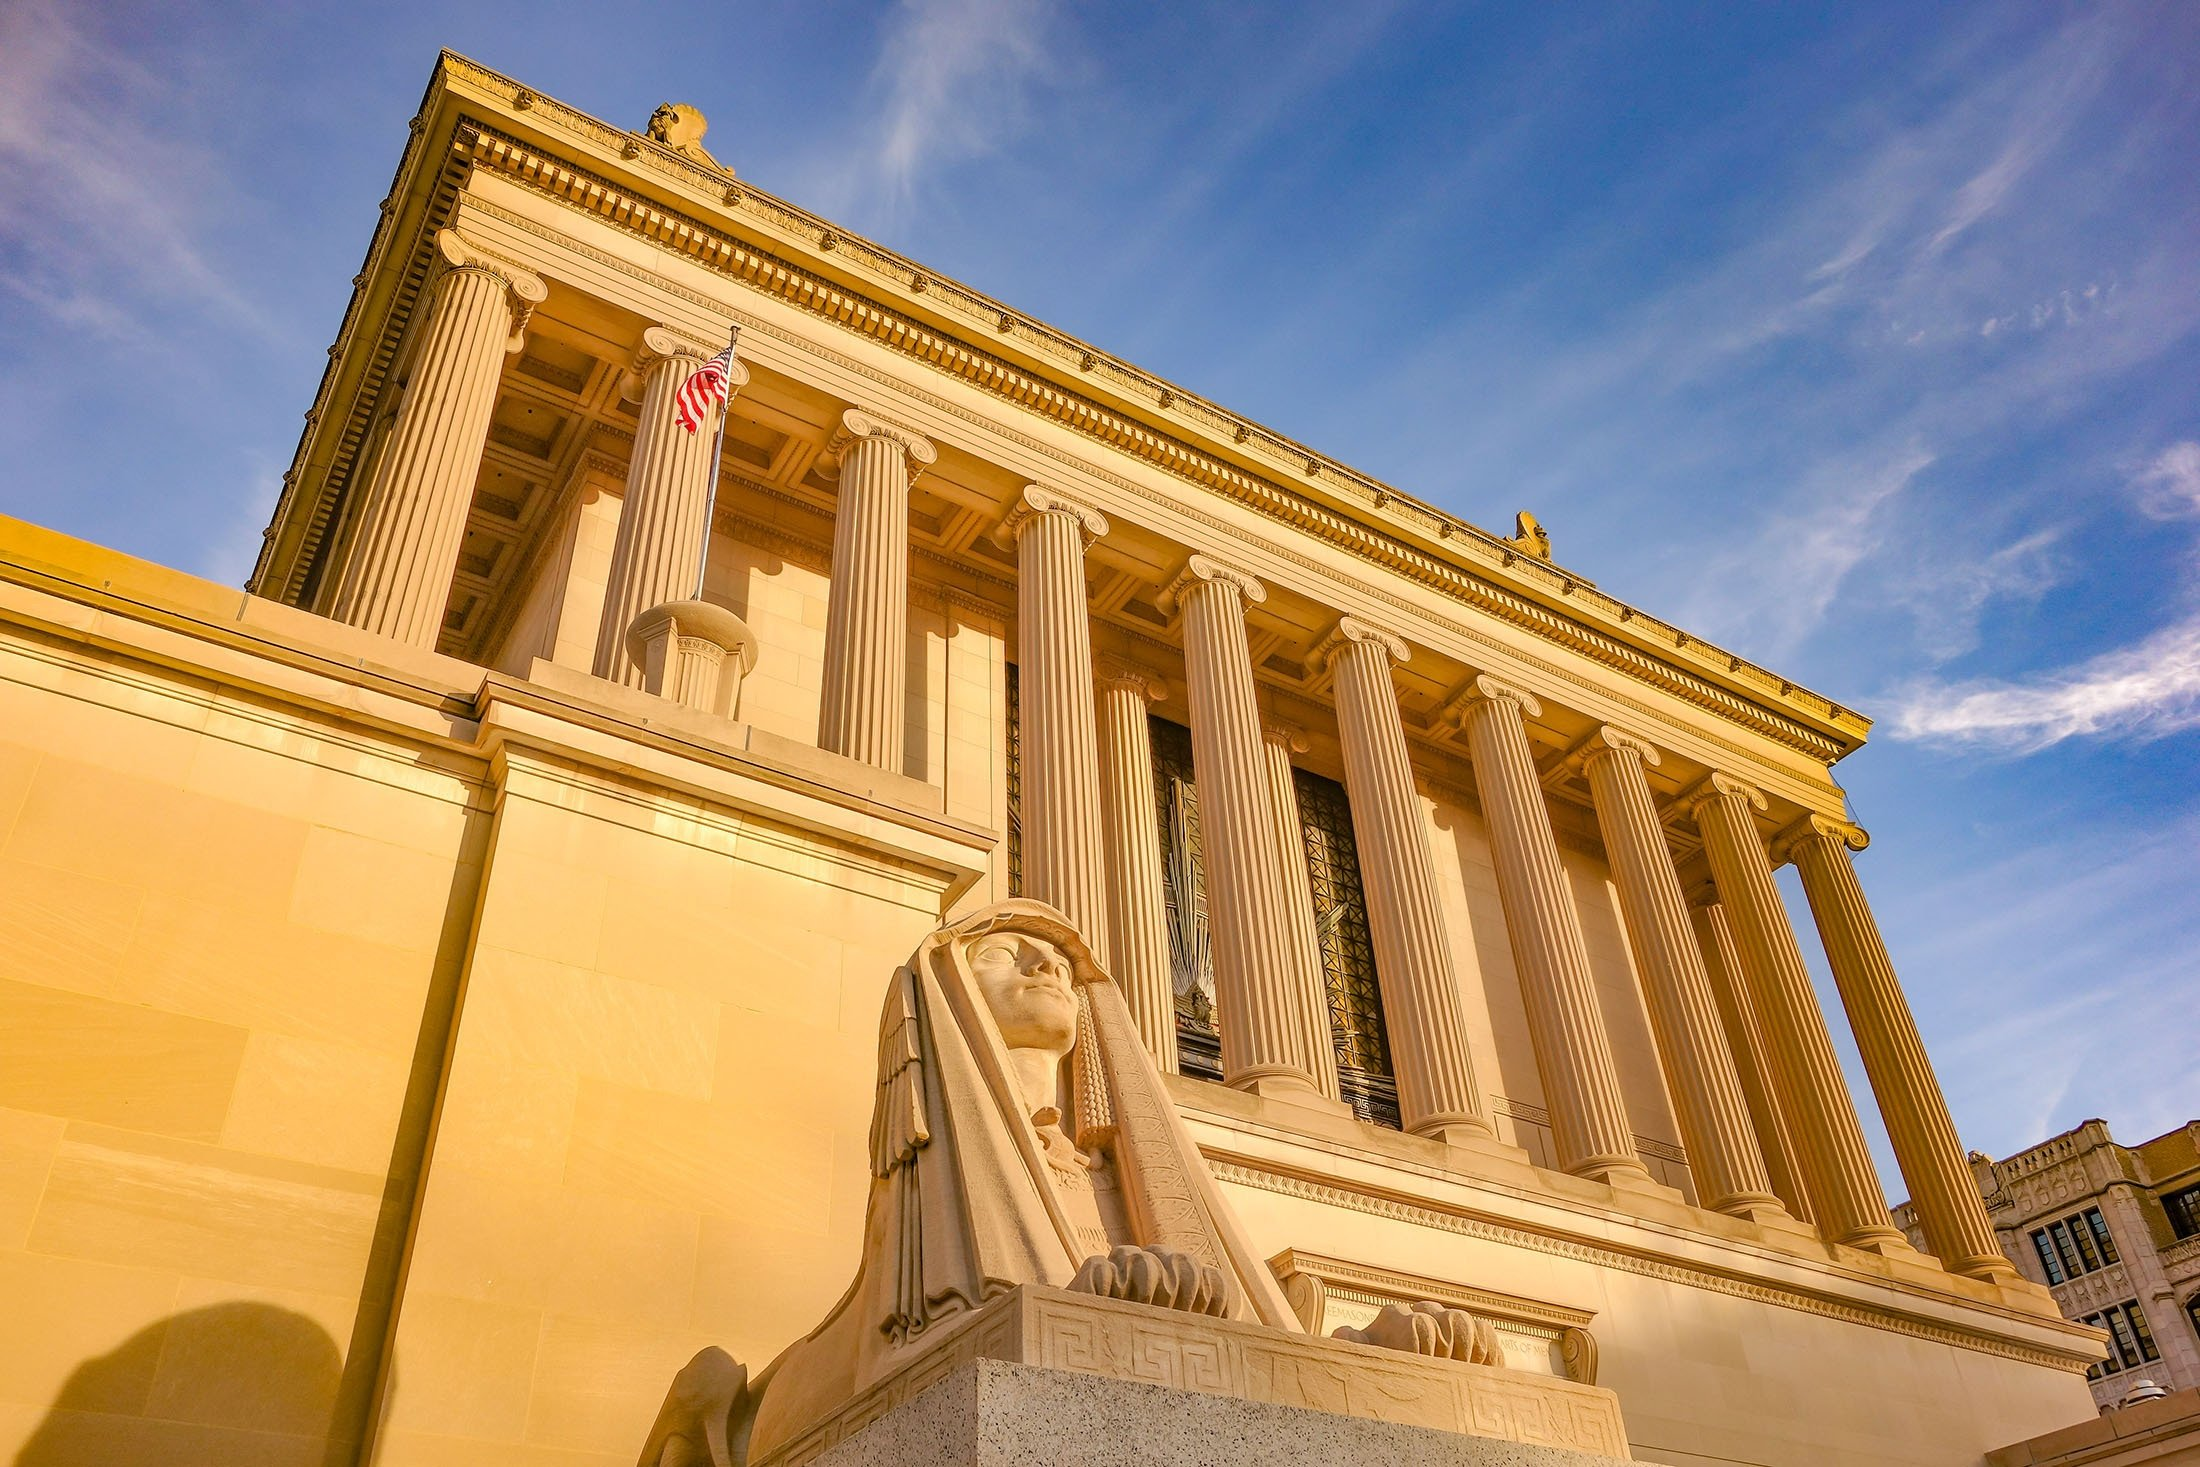 The House of the Temple,a Masonic temple, can be seen inWashington, U.S. (Shutterstock Photo)